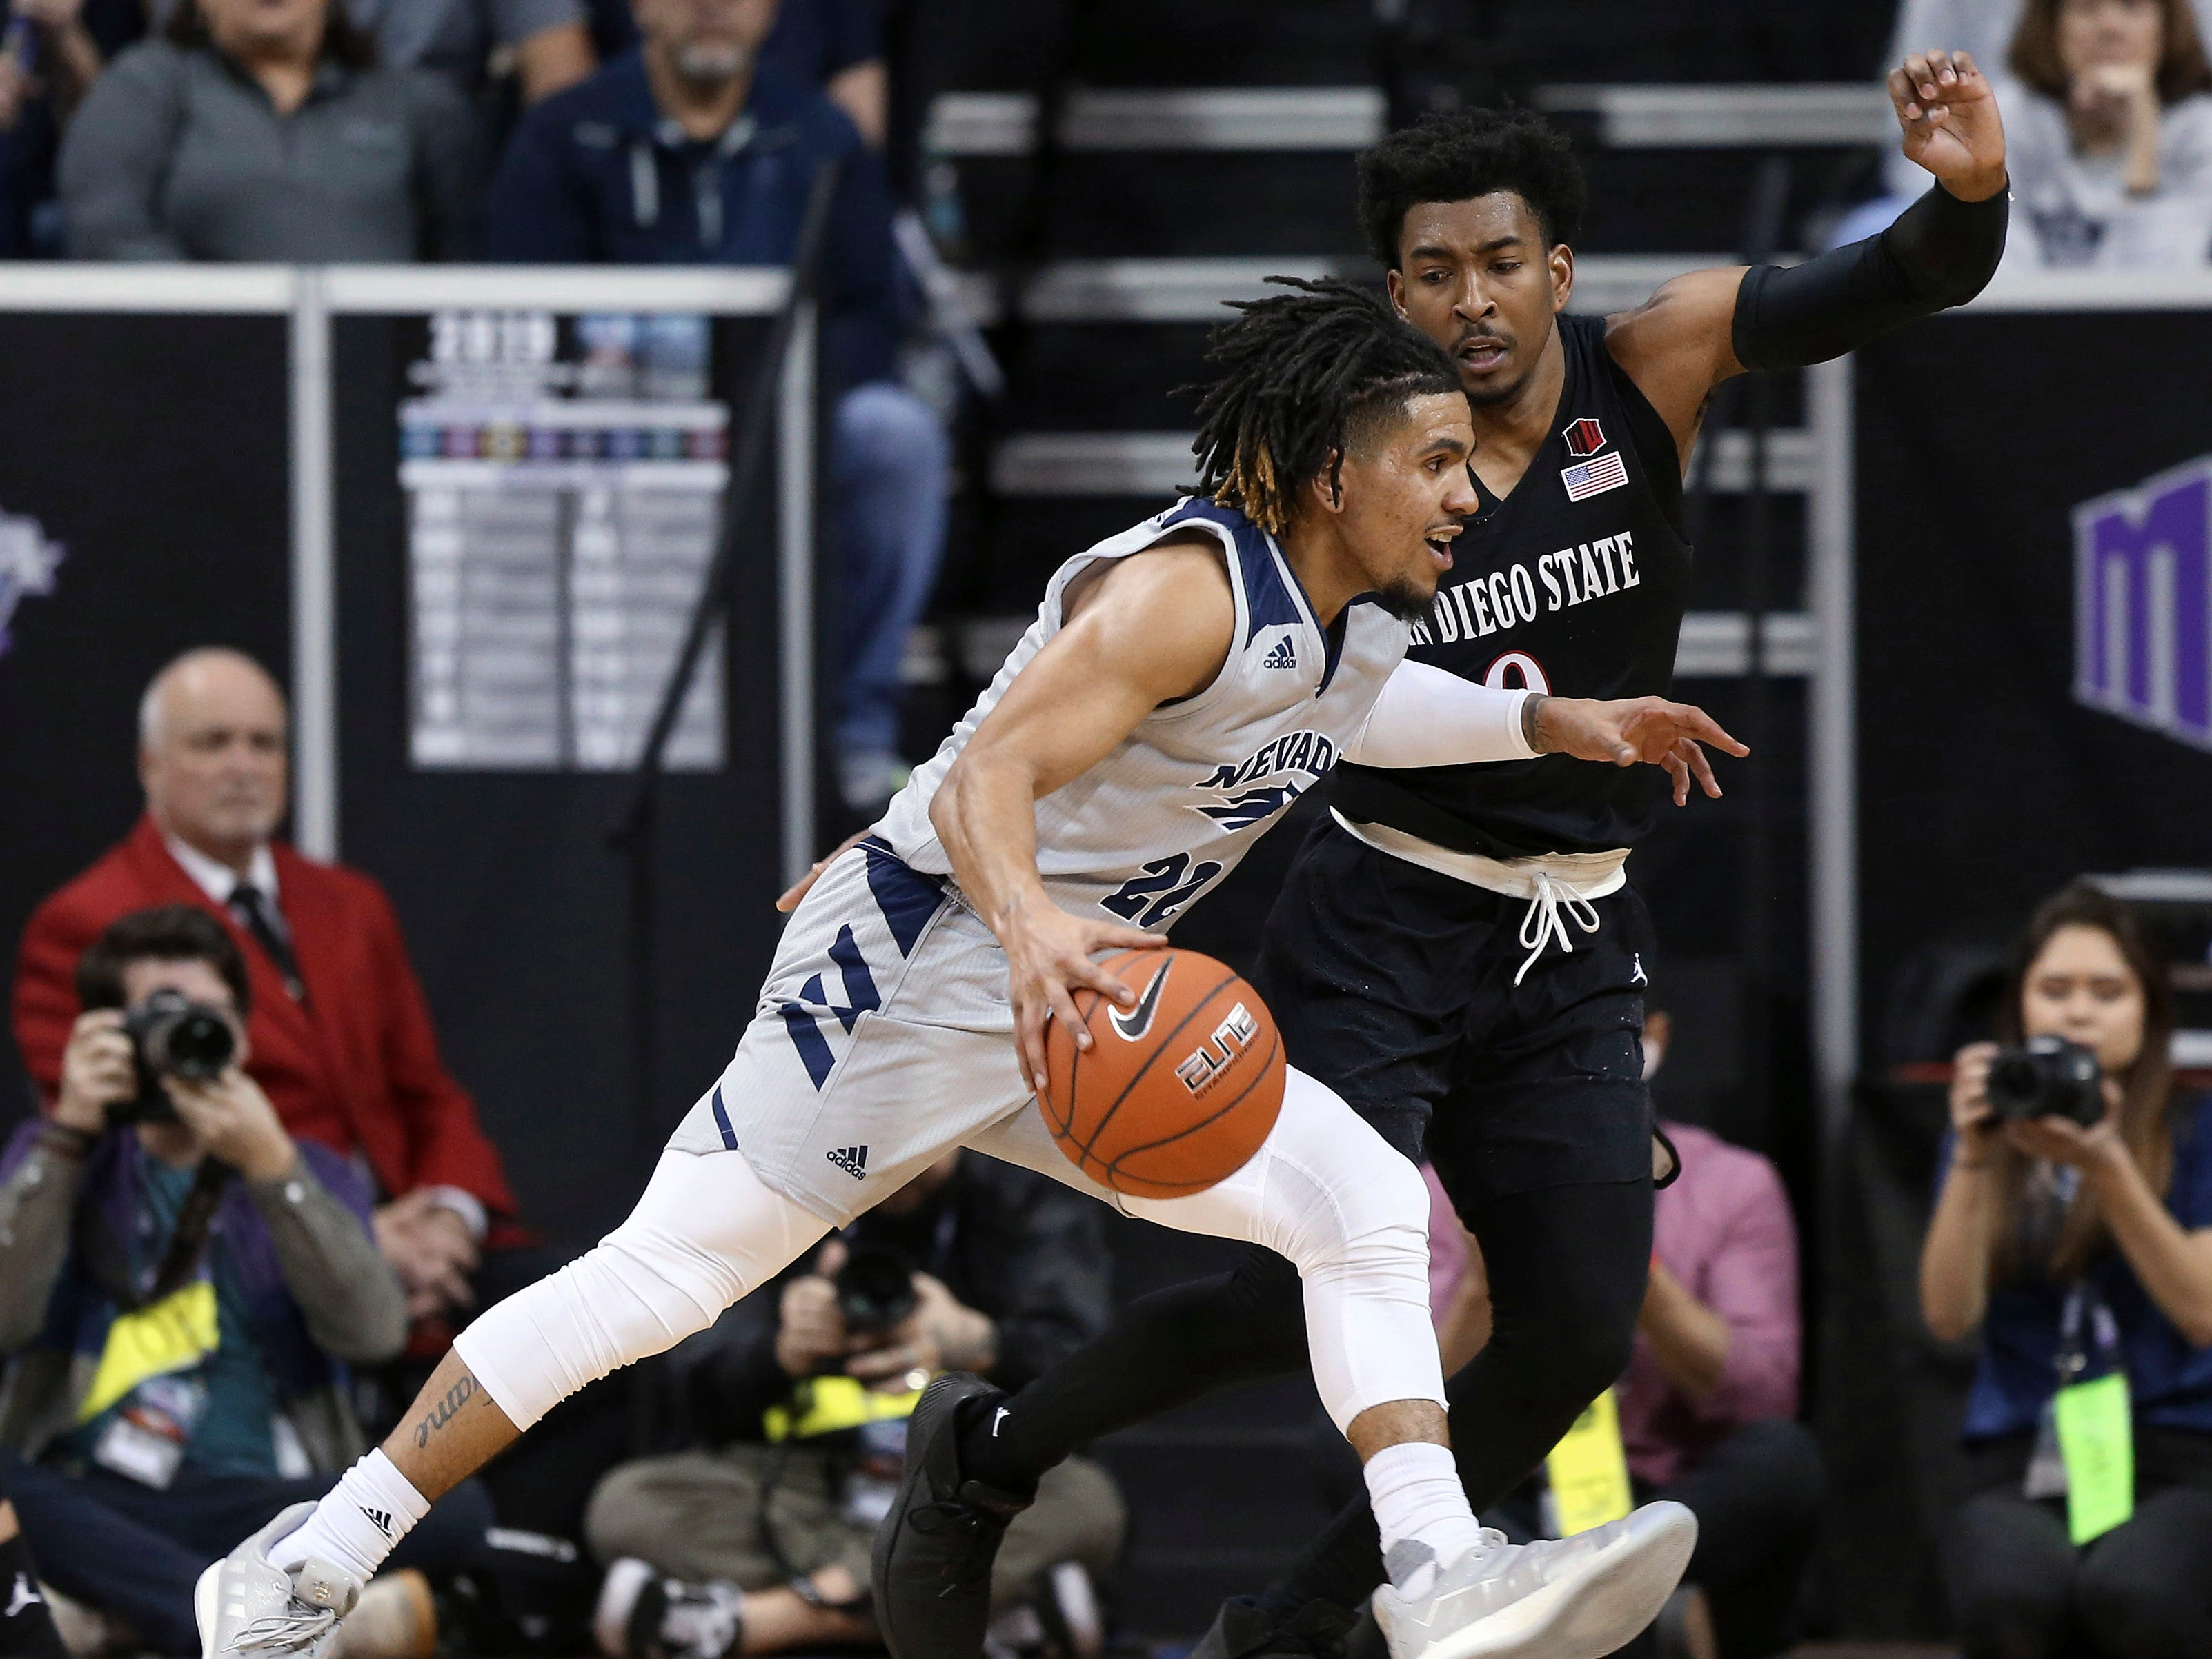 San Diego State's Devin Watson (0) defends as Nevada's Jazz Johnson (22) drives during the second half of an NCAA college basketball game in the Mountain West Conference men's tournament Friday, March 15, 2019, in Las Vegas. (AP Photo/Isaac Brekken)